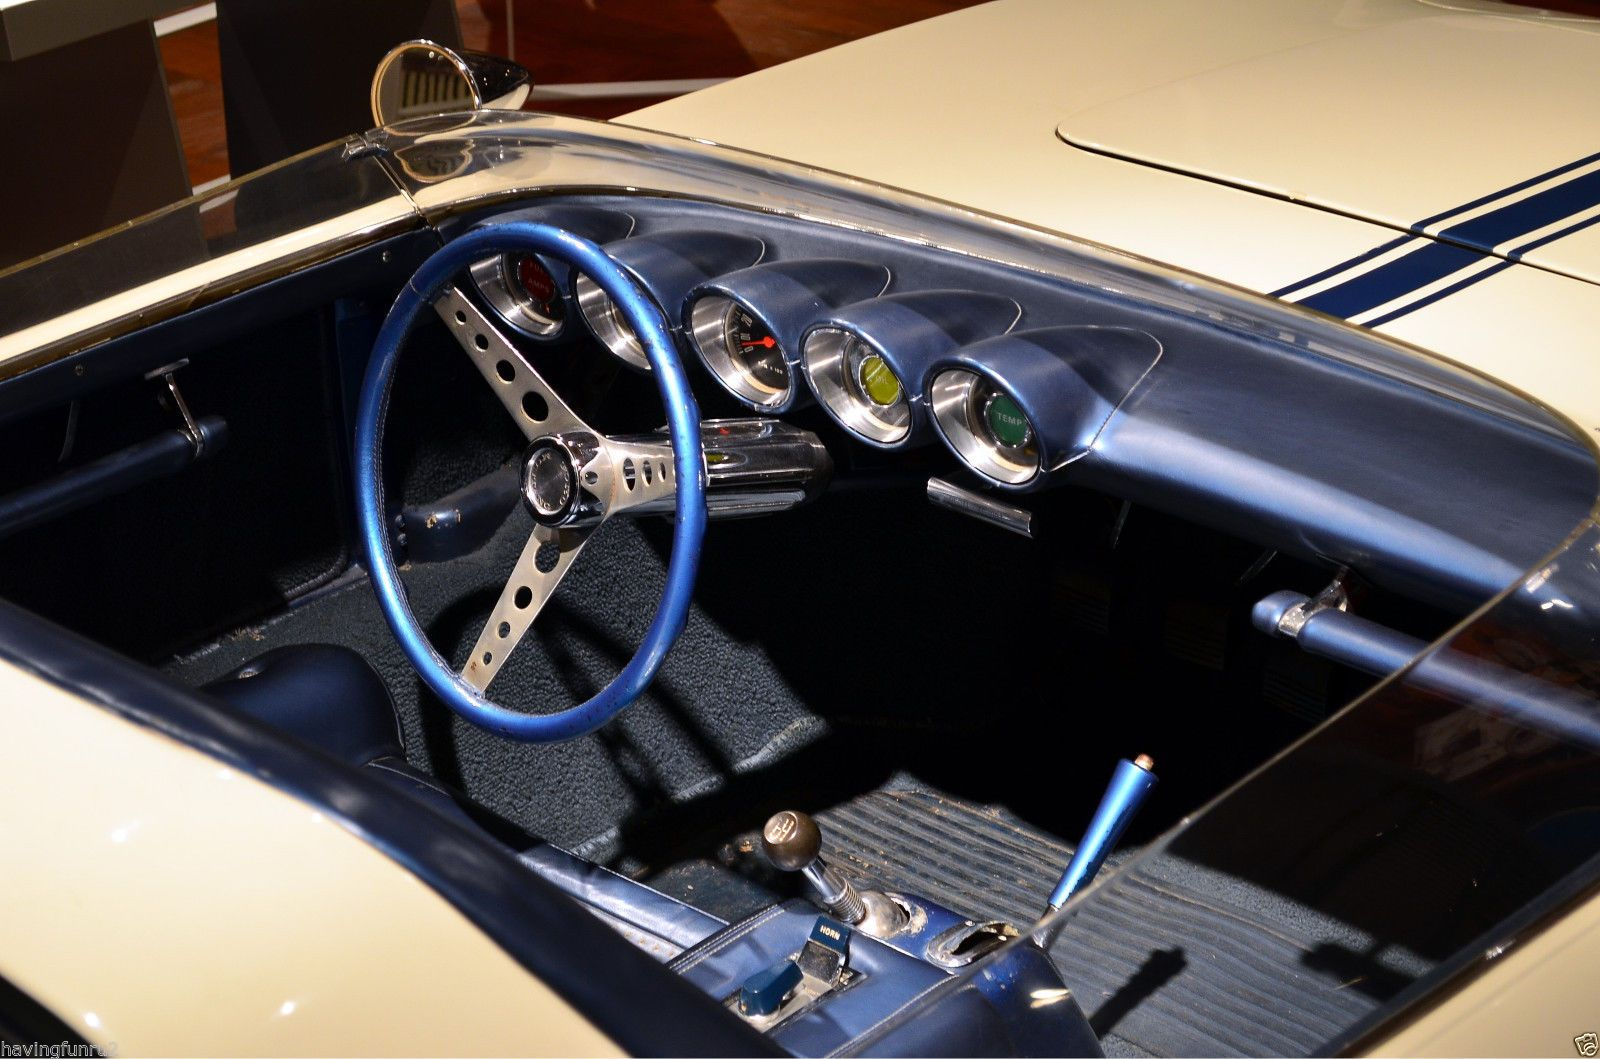 1962 Ford Mustang prototype interior. What a great year, '62